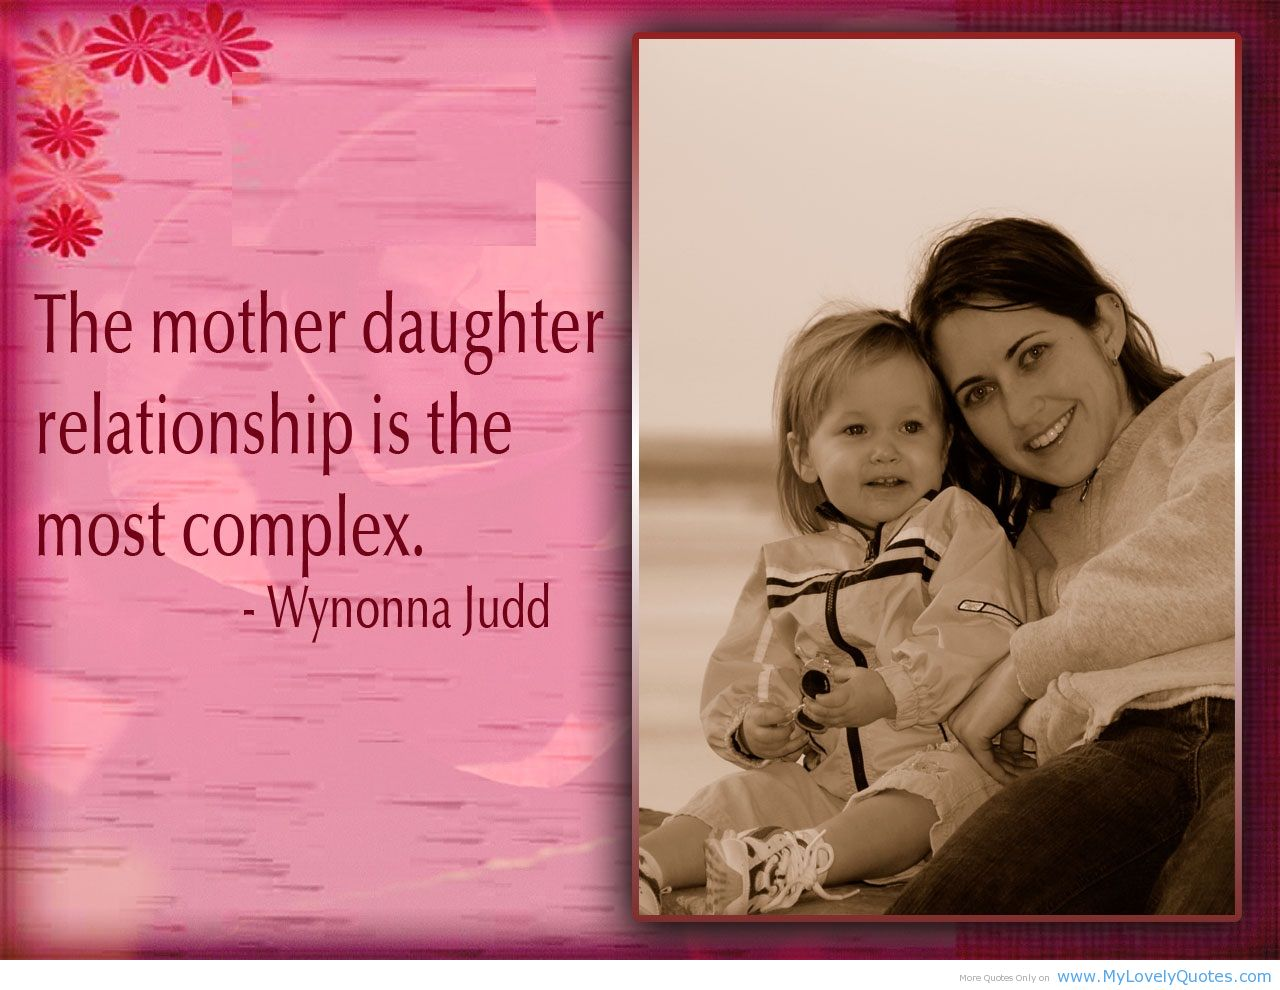 Funny Daughter Quotes Sad Quotes About Mothers And Daughters Best Funny Mother Daughter